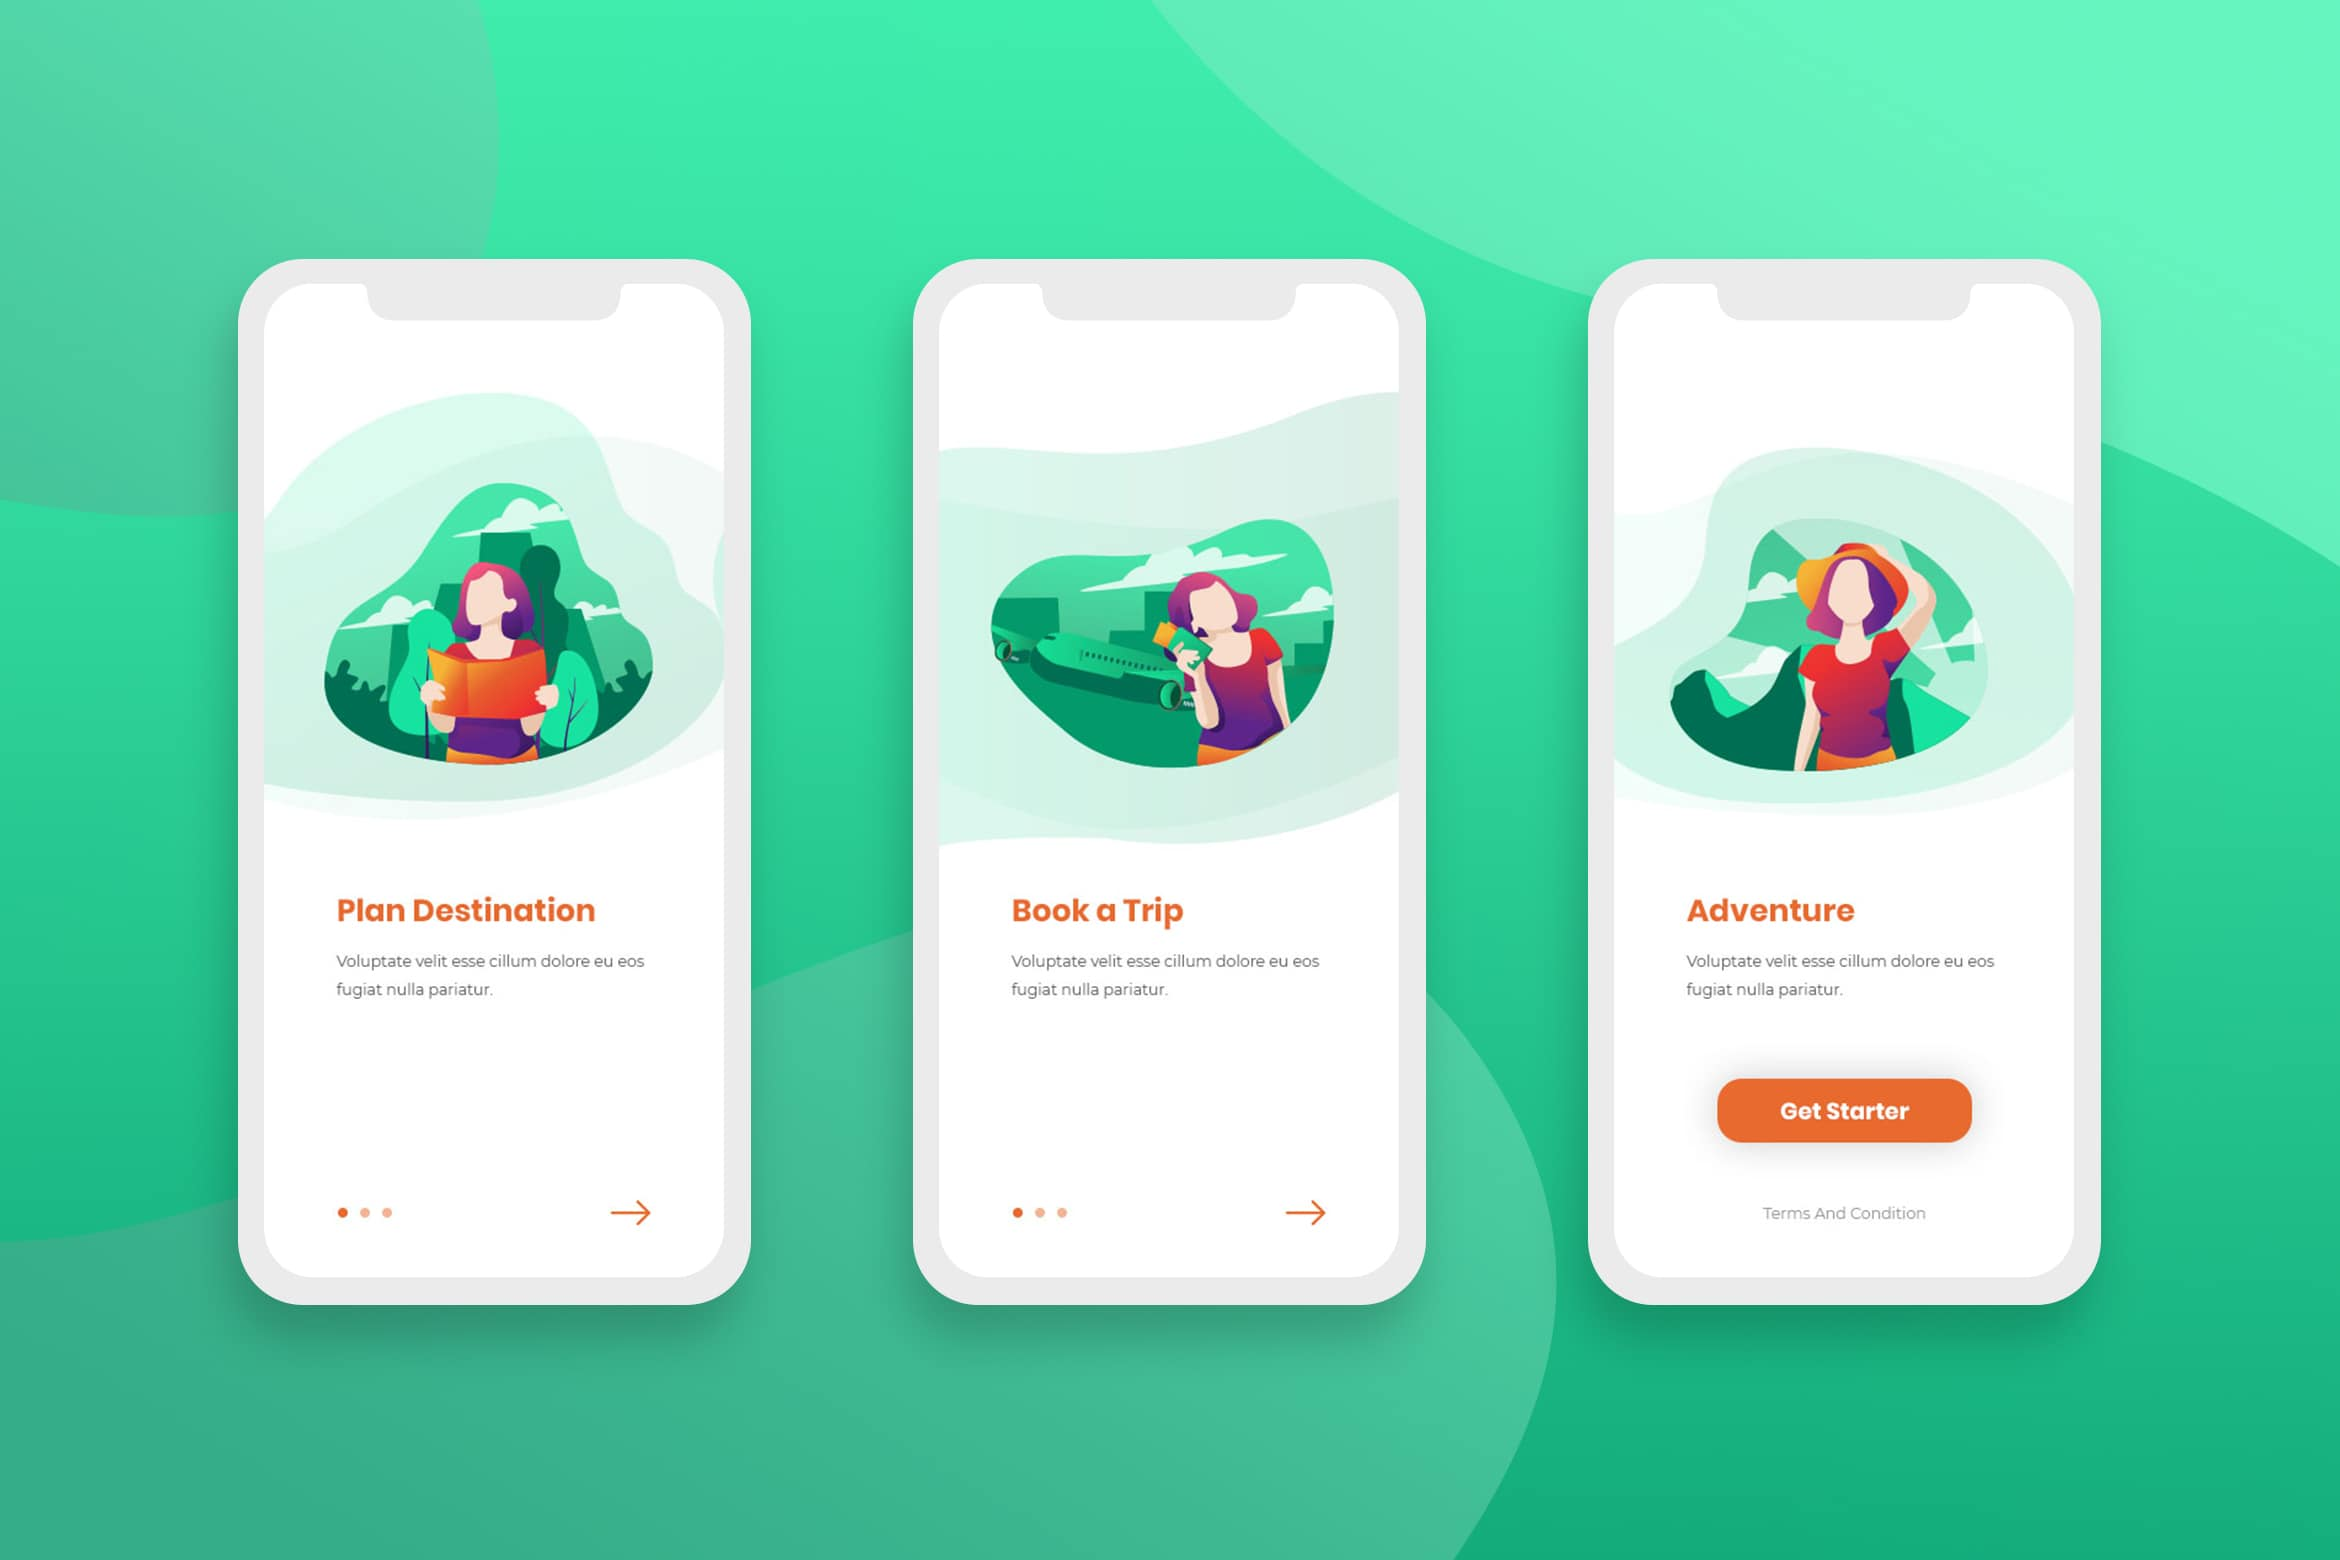 Onboarding Screens - Trip & Adventure